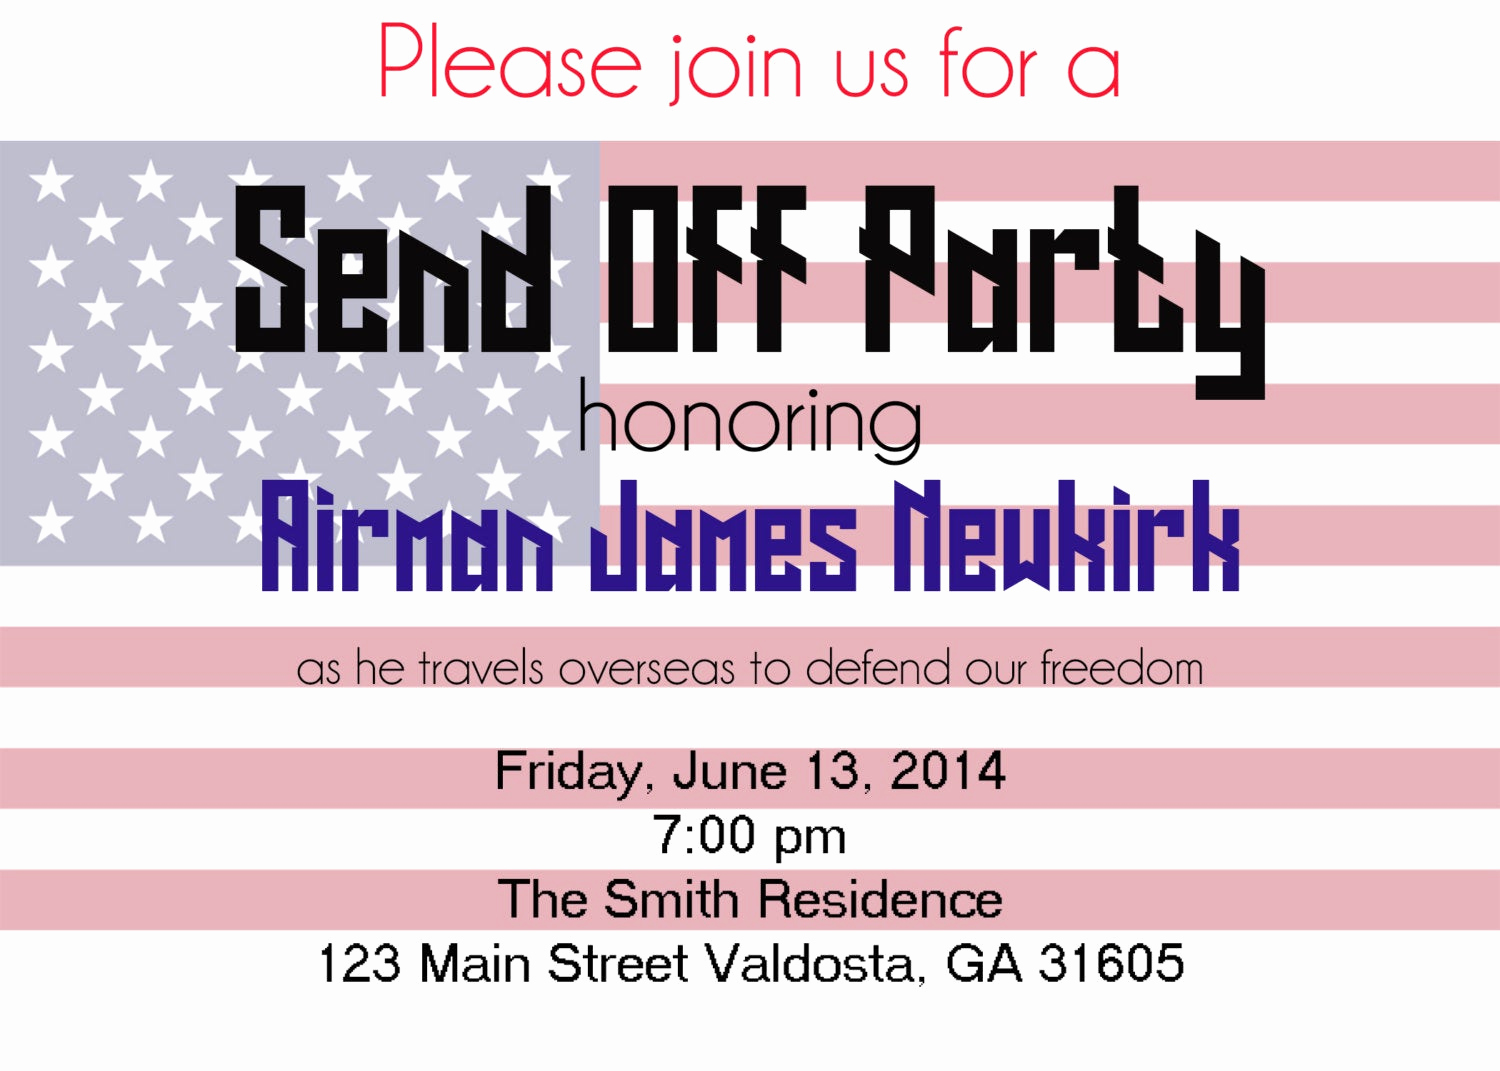 Send Off Party Invitation Lovely Send F Party Invitation by isabellasaintjames On Etsy